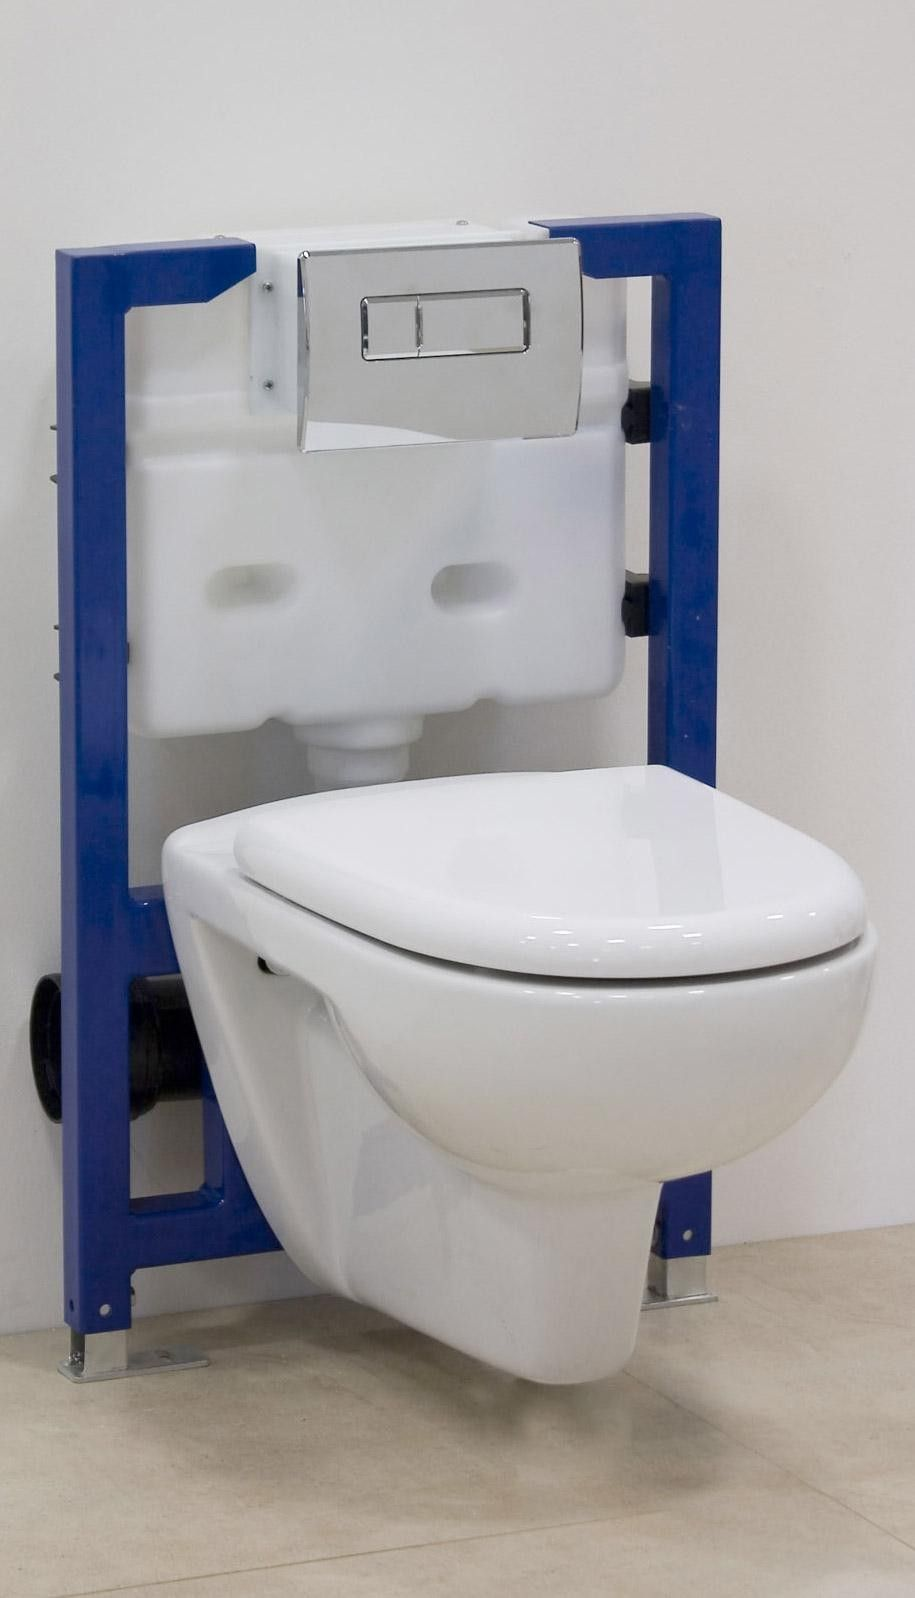 Mounting the concealed cistern. Accessory toilet with concealed cistern